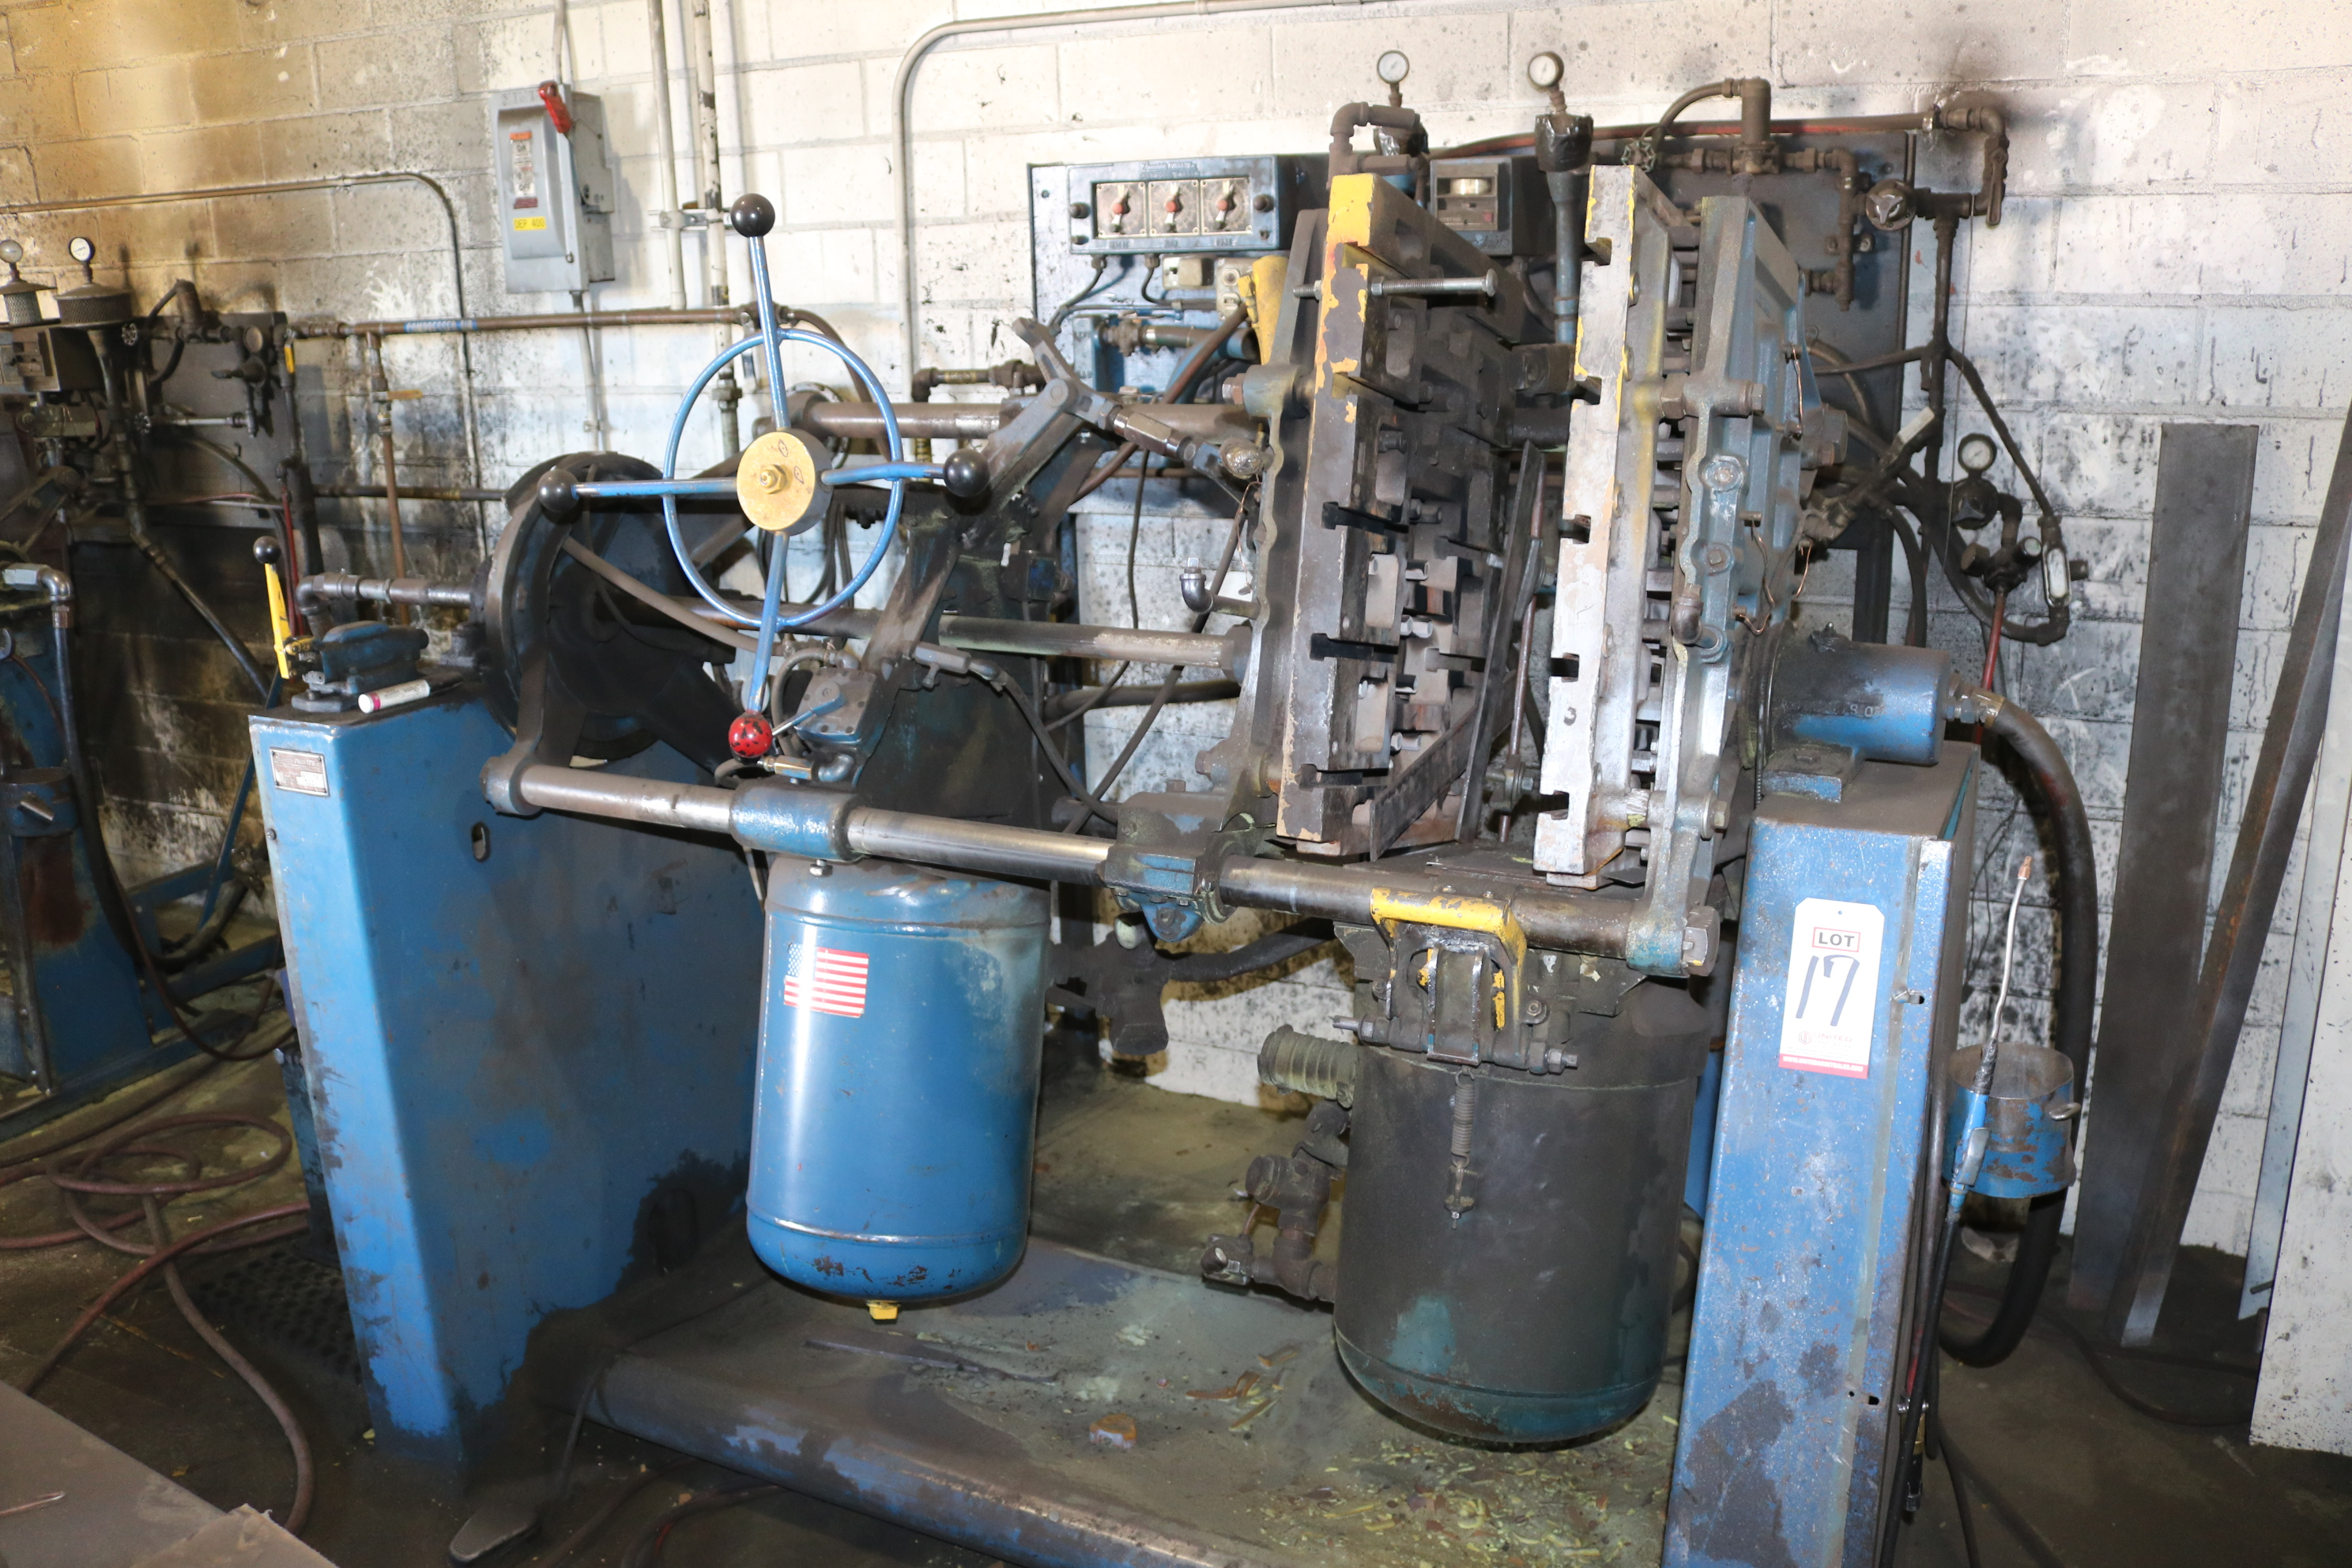 Lot 17 - DEPENDABLE MODEL 400SA SEMI-AUTOMATIC SHELL CORE MACHINE, GAS PANEL AND HYDRAULIC SYSTEM, S/N 305